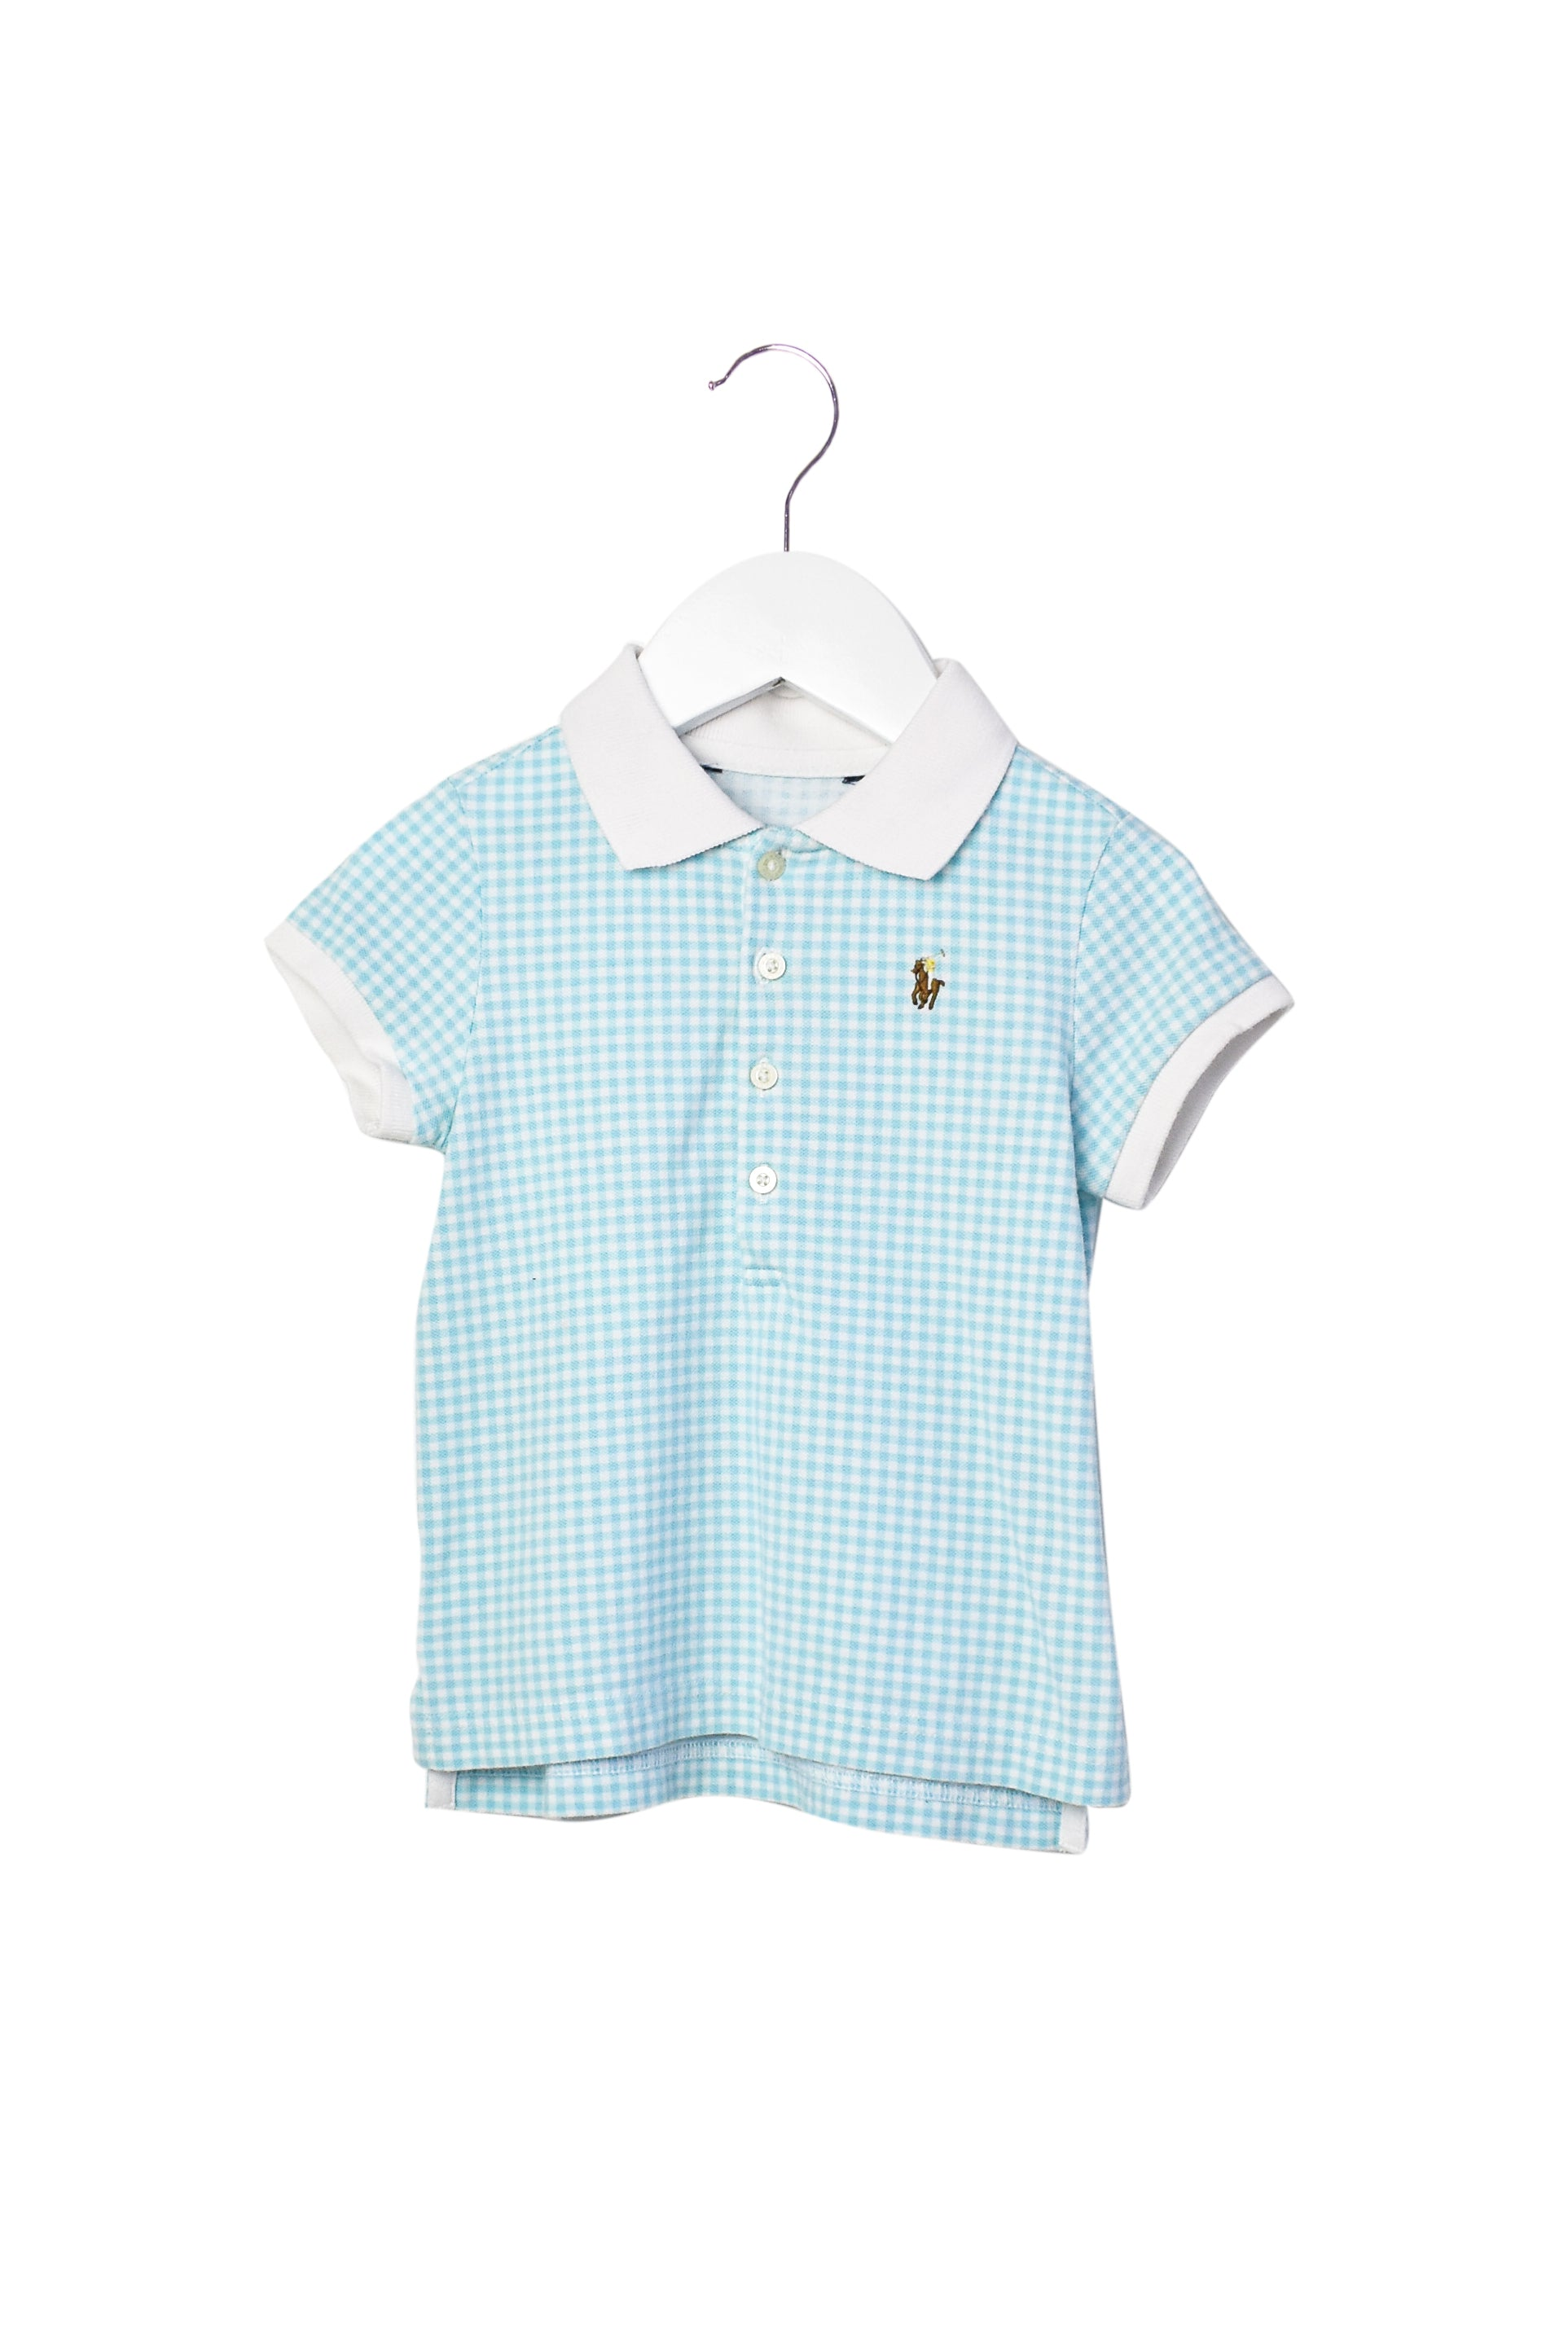 10006677 Ralph Lauren Kids~Polo 3T at Retykle